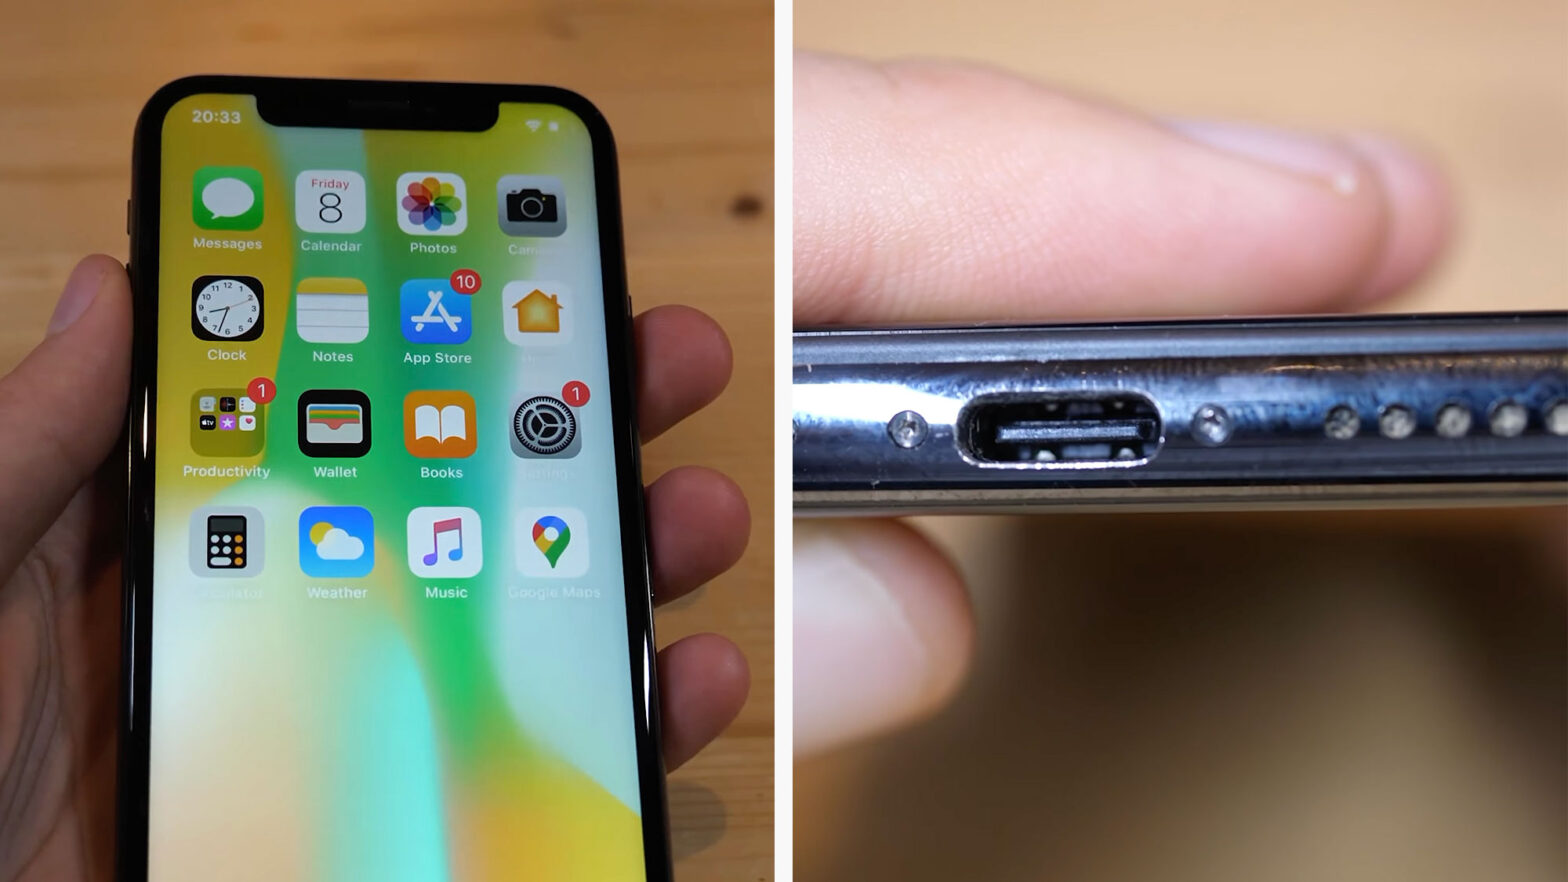 The World's First iPhone With USB-C Port